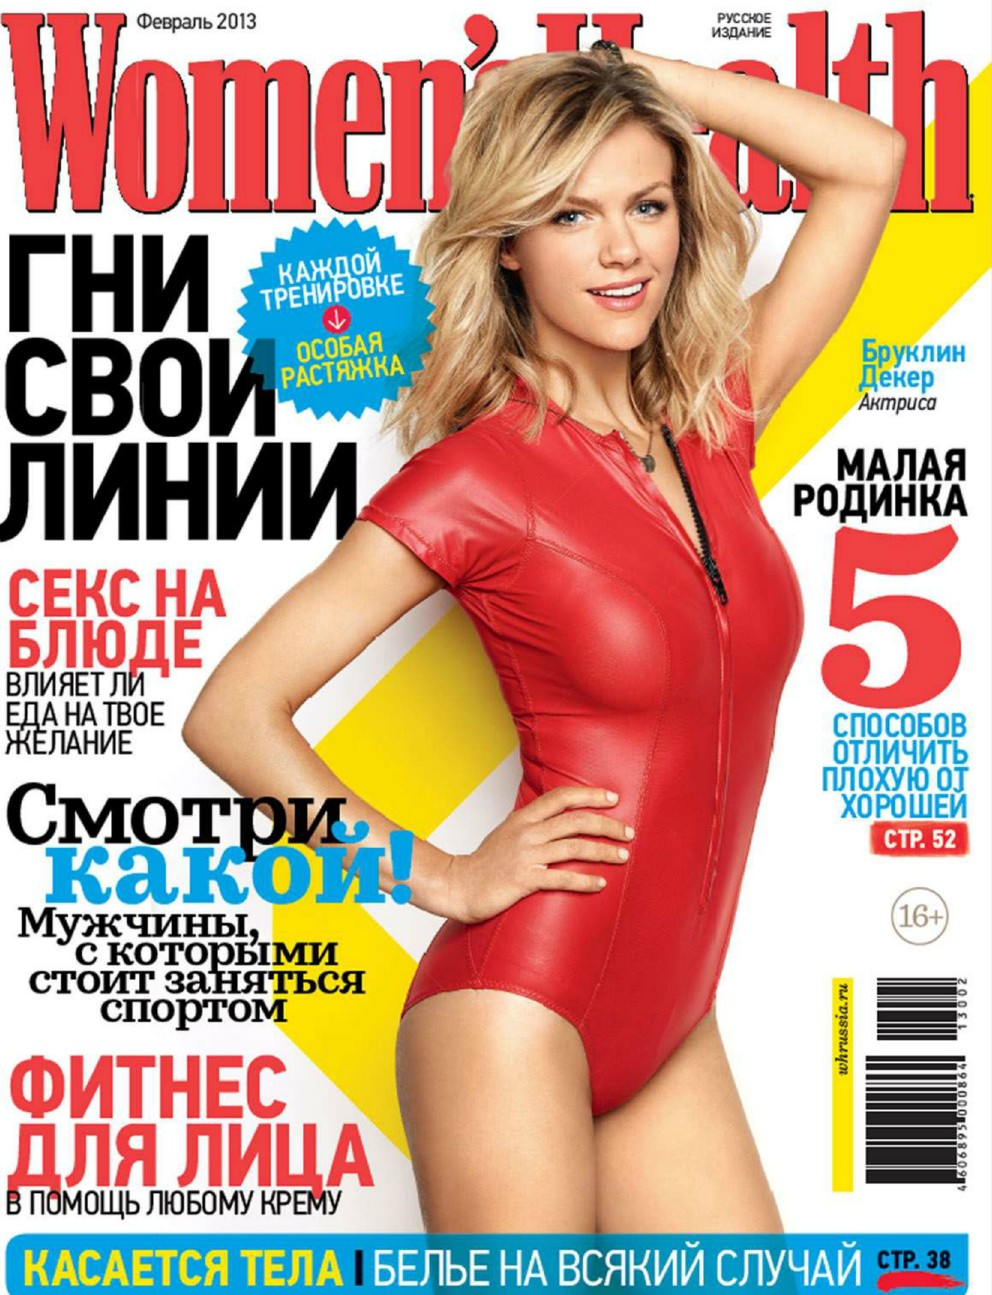 womens health Women's health magazine focuses on the emotional and physical process of healthy living featuring sections such as fitness, food, weight loss, sex & relationships, health, eat this, style, and beauty, this magazine focuses on the health of the whole woman.